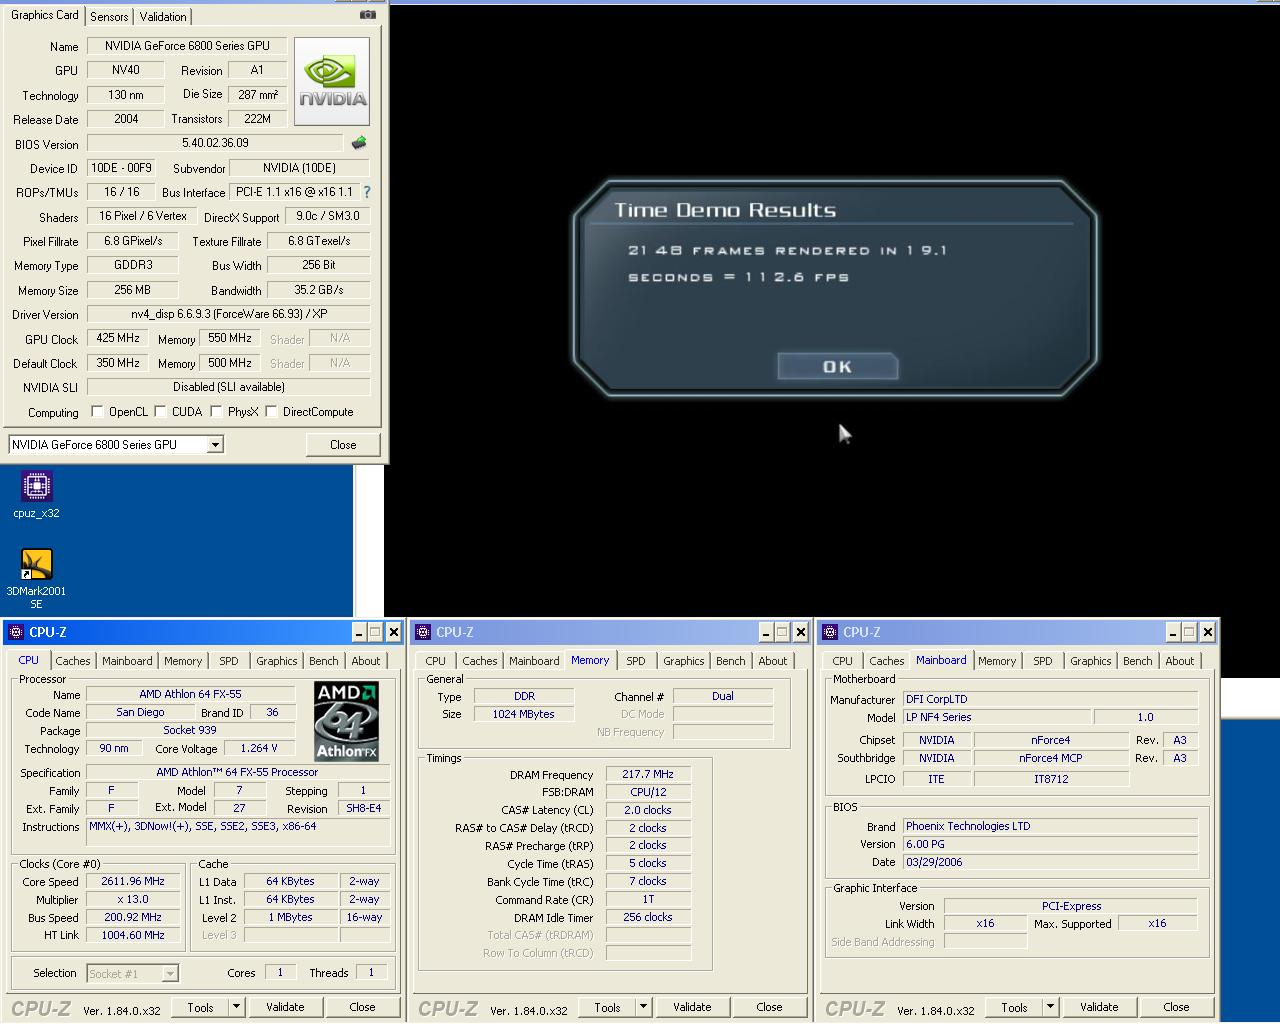 FX55 0.09 um 2x512MB DDR435 2 2 2 5 1T Geforce 6800GT 425 1100 doom3 1024 Ultra.JPG